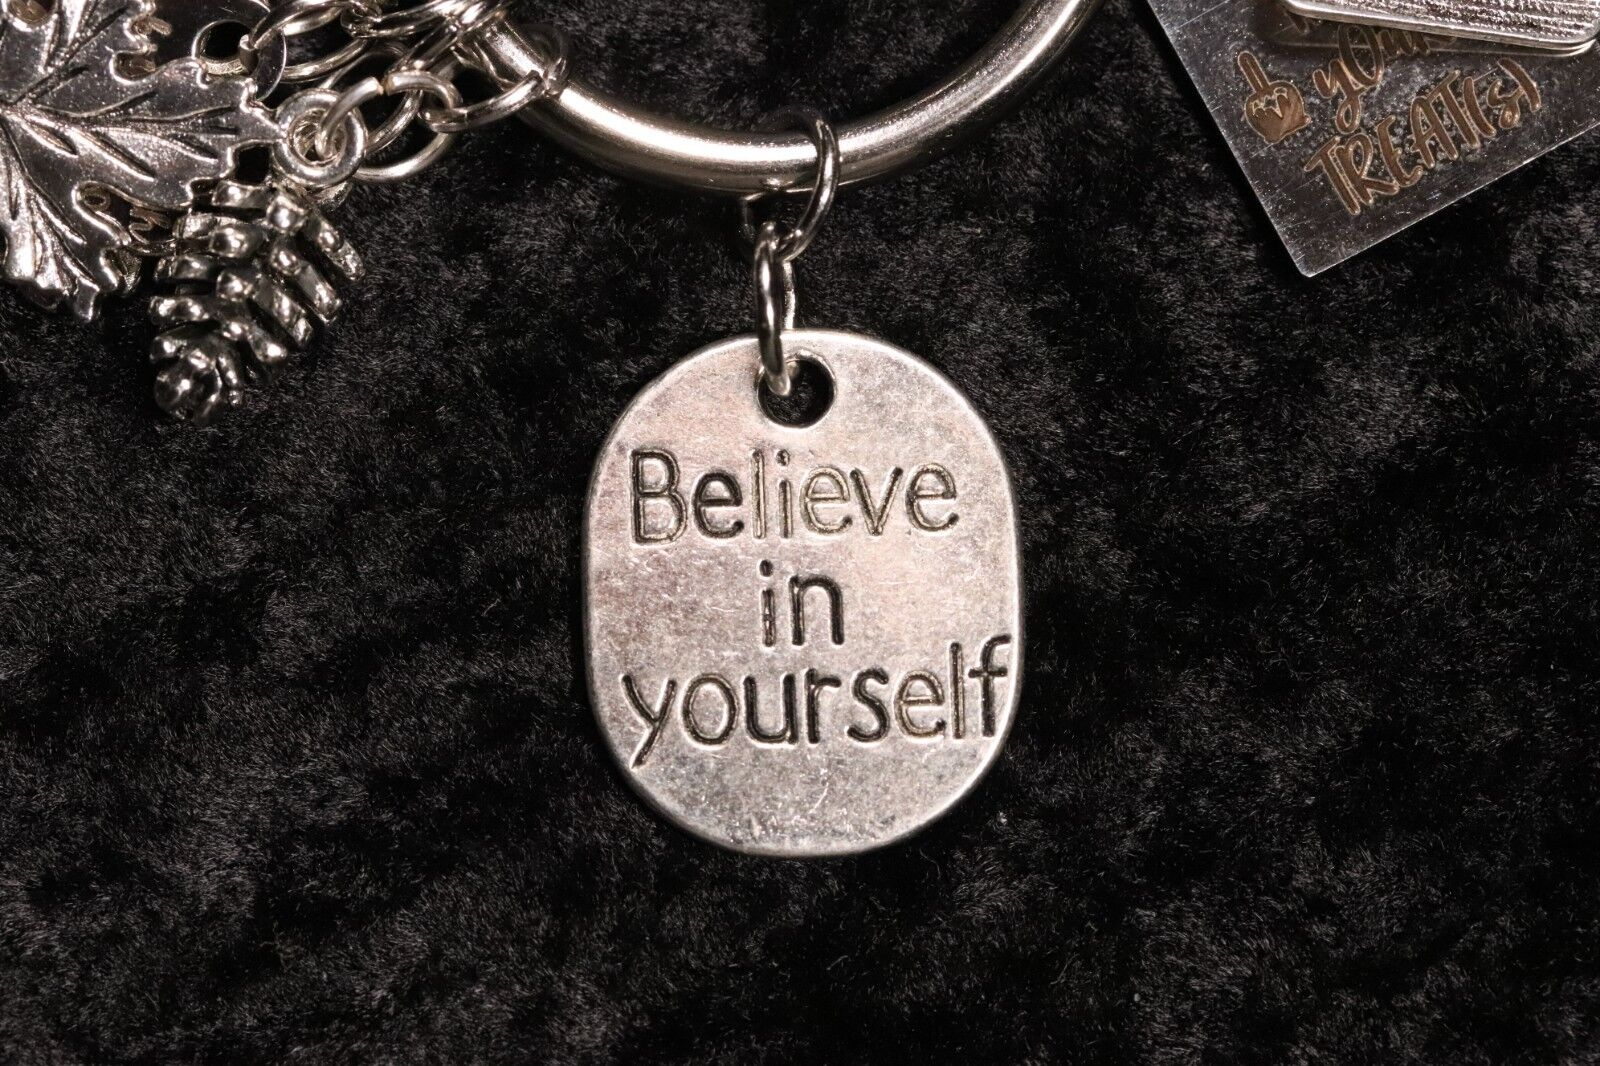 """Believe in yourself"" – Motivational Weight Loss Charm for Weight Watchers Ring s l1600"